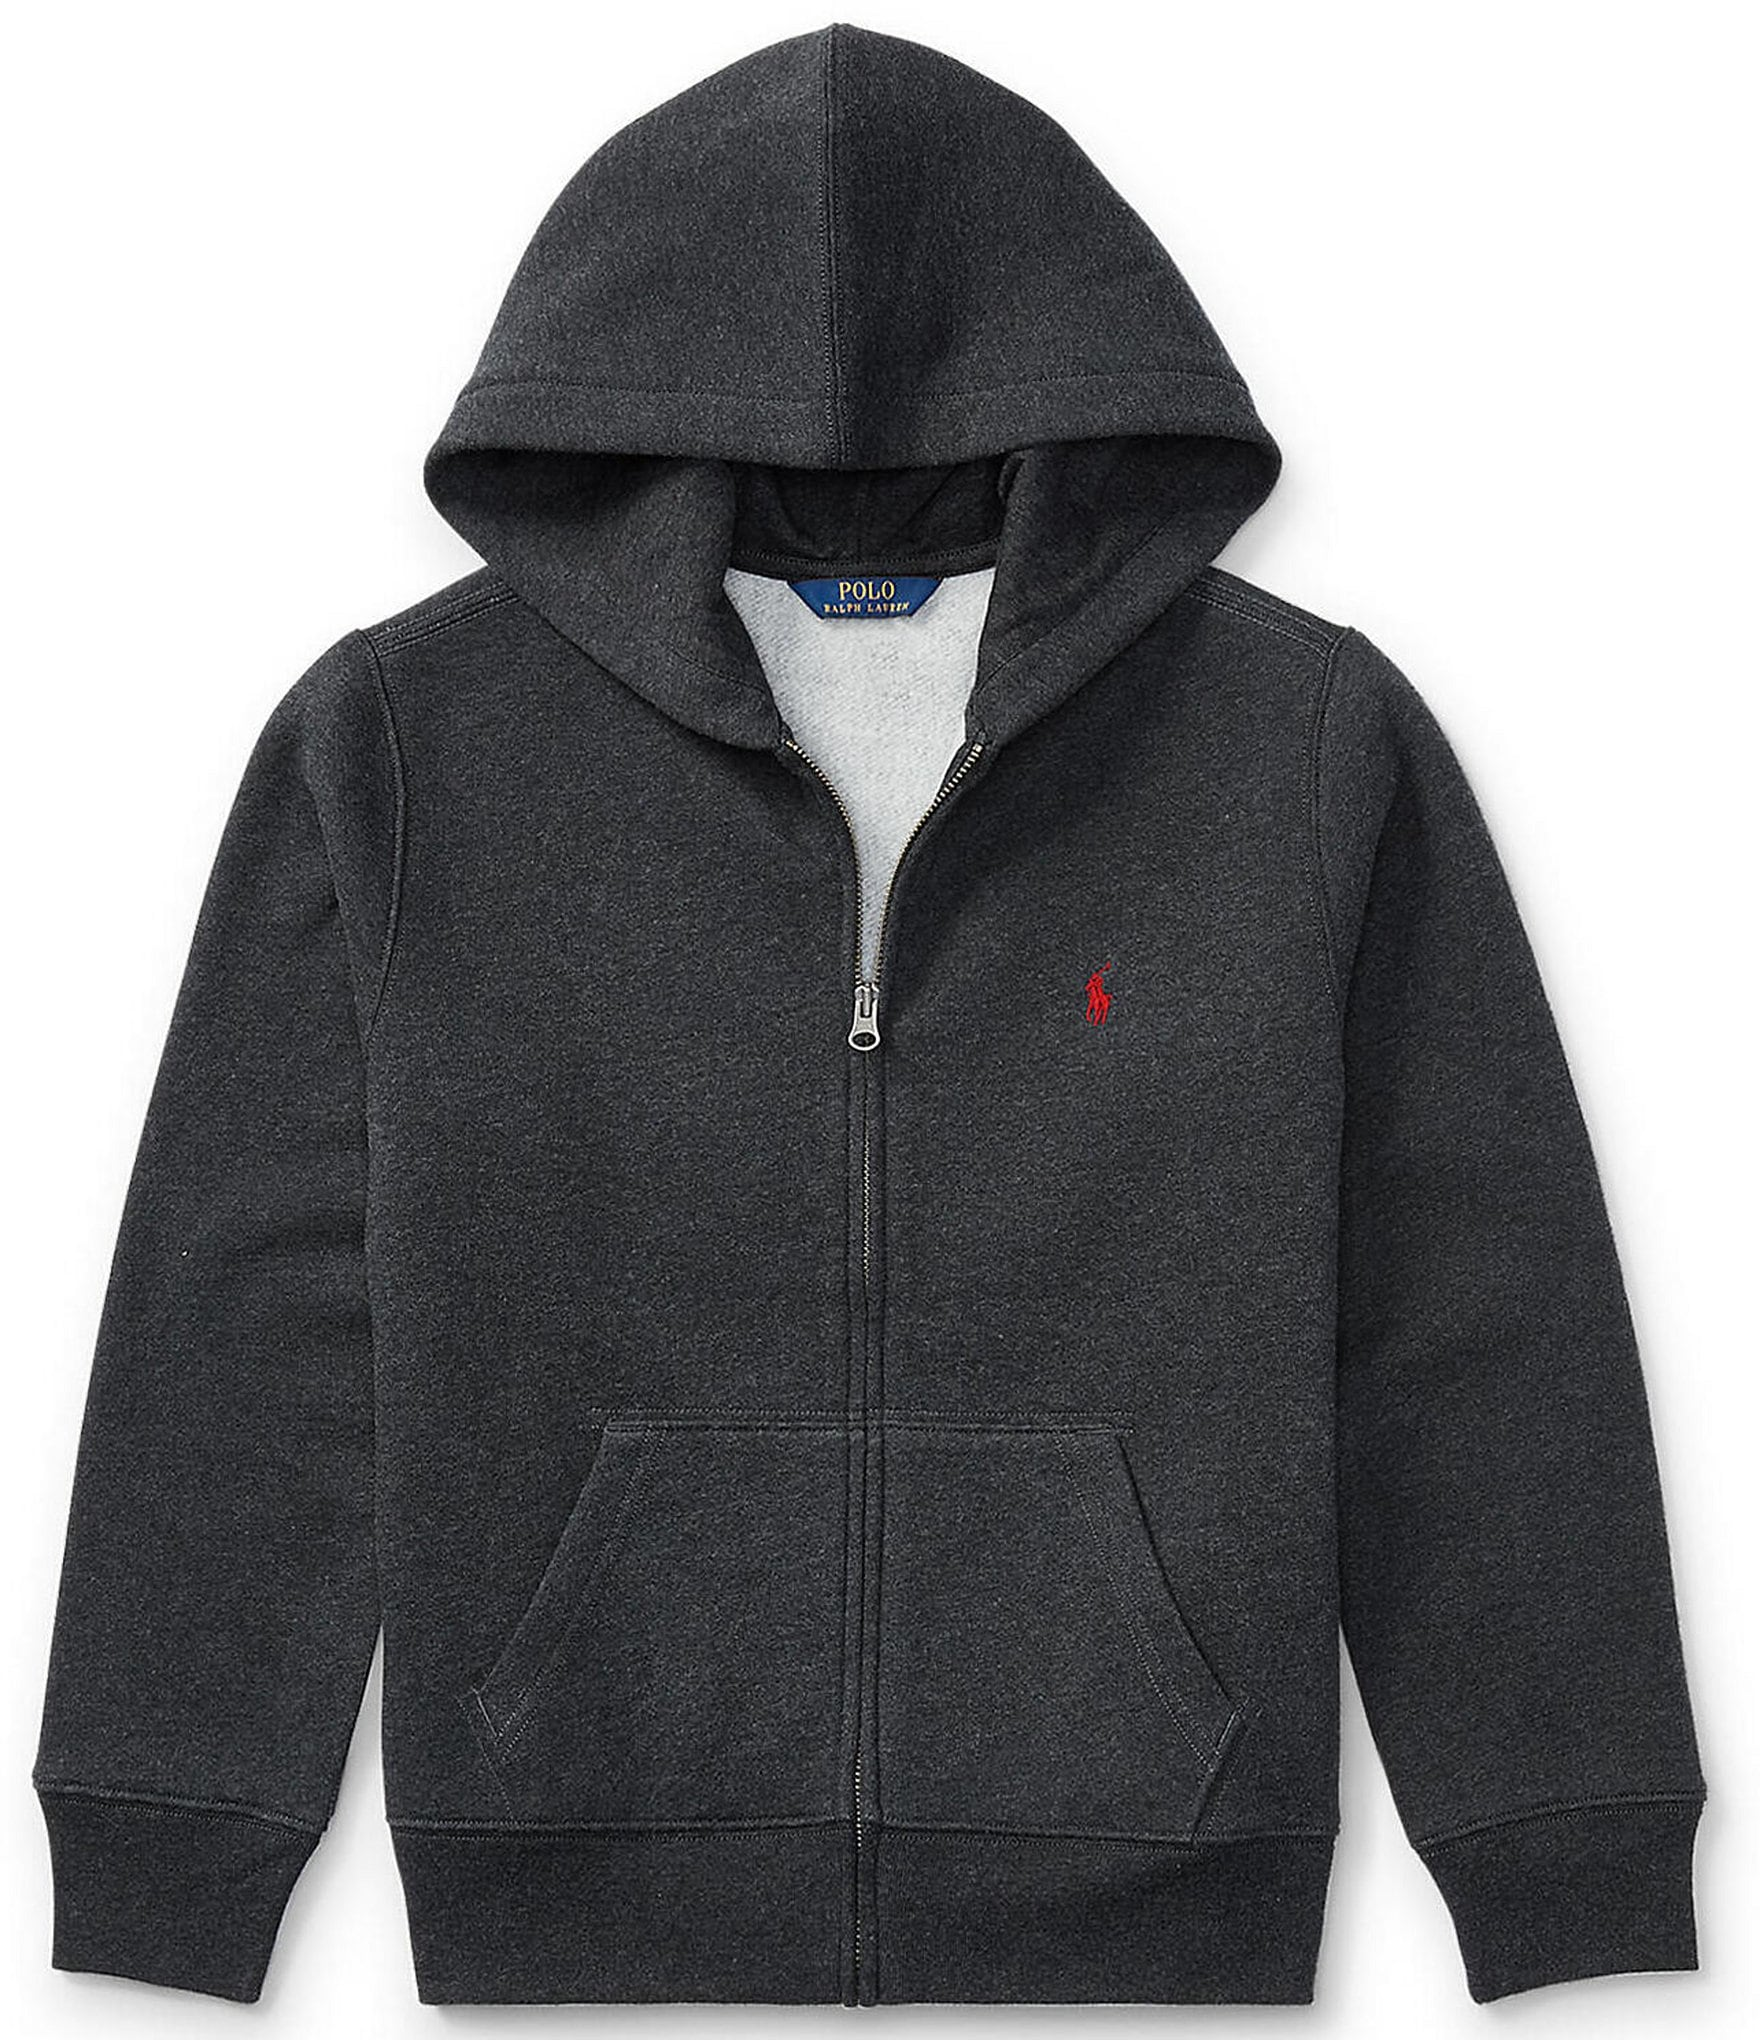 3008d77f0a48 Boys  Hoodies   Pullovers 8-20